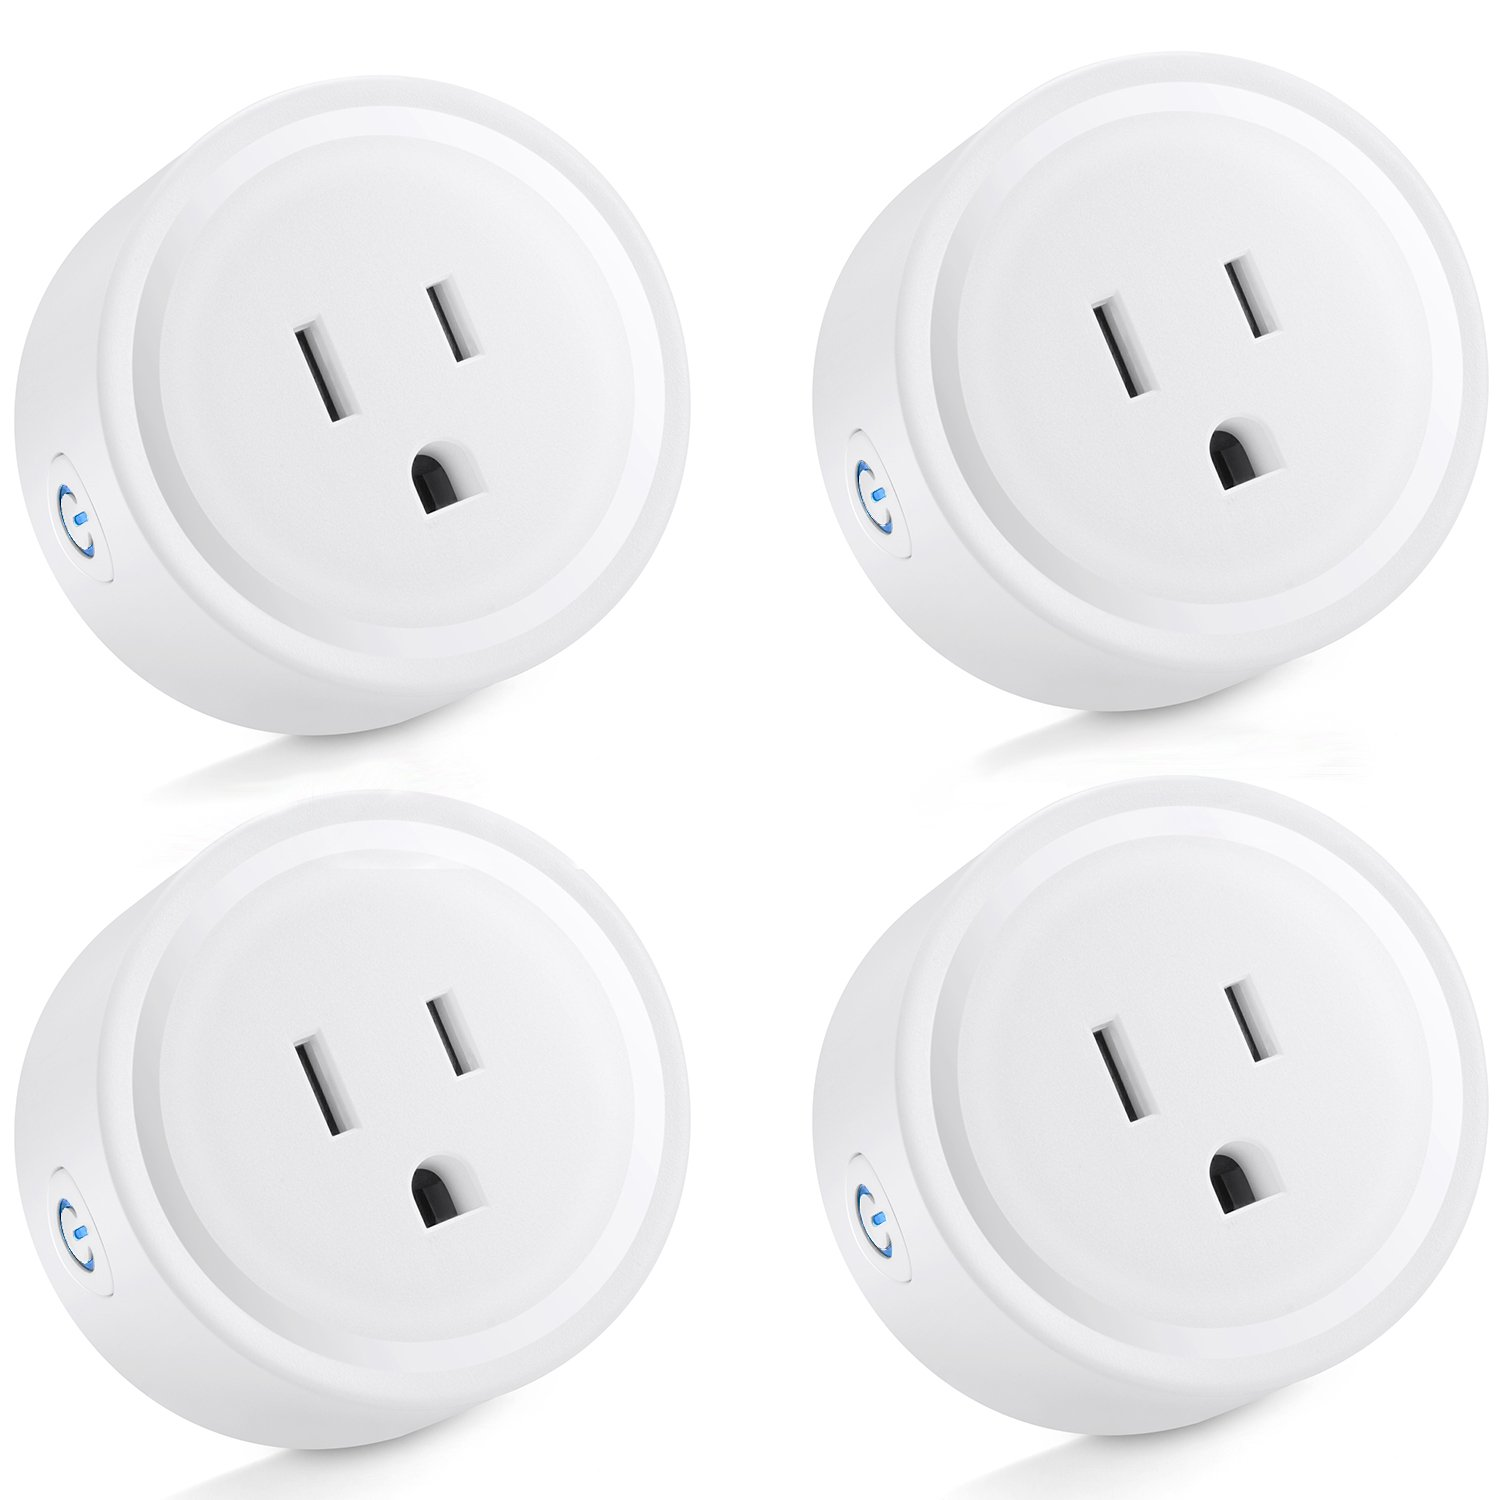 [4 Pack] BESTTEN Mini Wi-Fi Smart Remote Control Outlet, Works with Amazon Alexa Echo and Google Home, Easy & Quick Set Up, White, No Hub Required, 10A/1250 W, FCC Certified, White